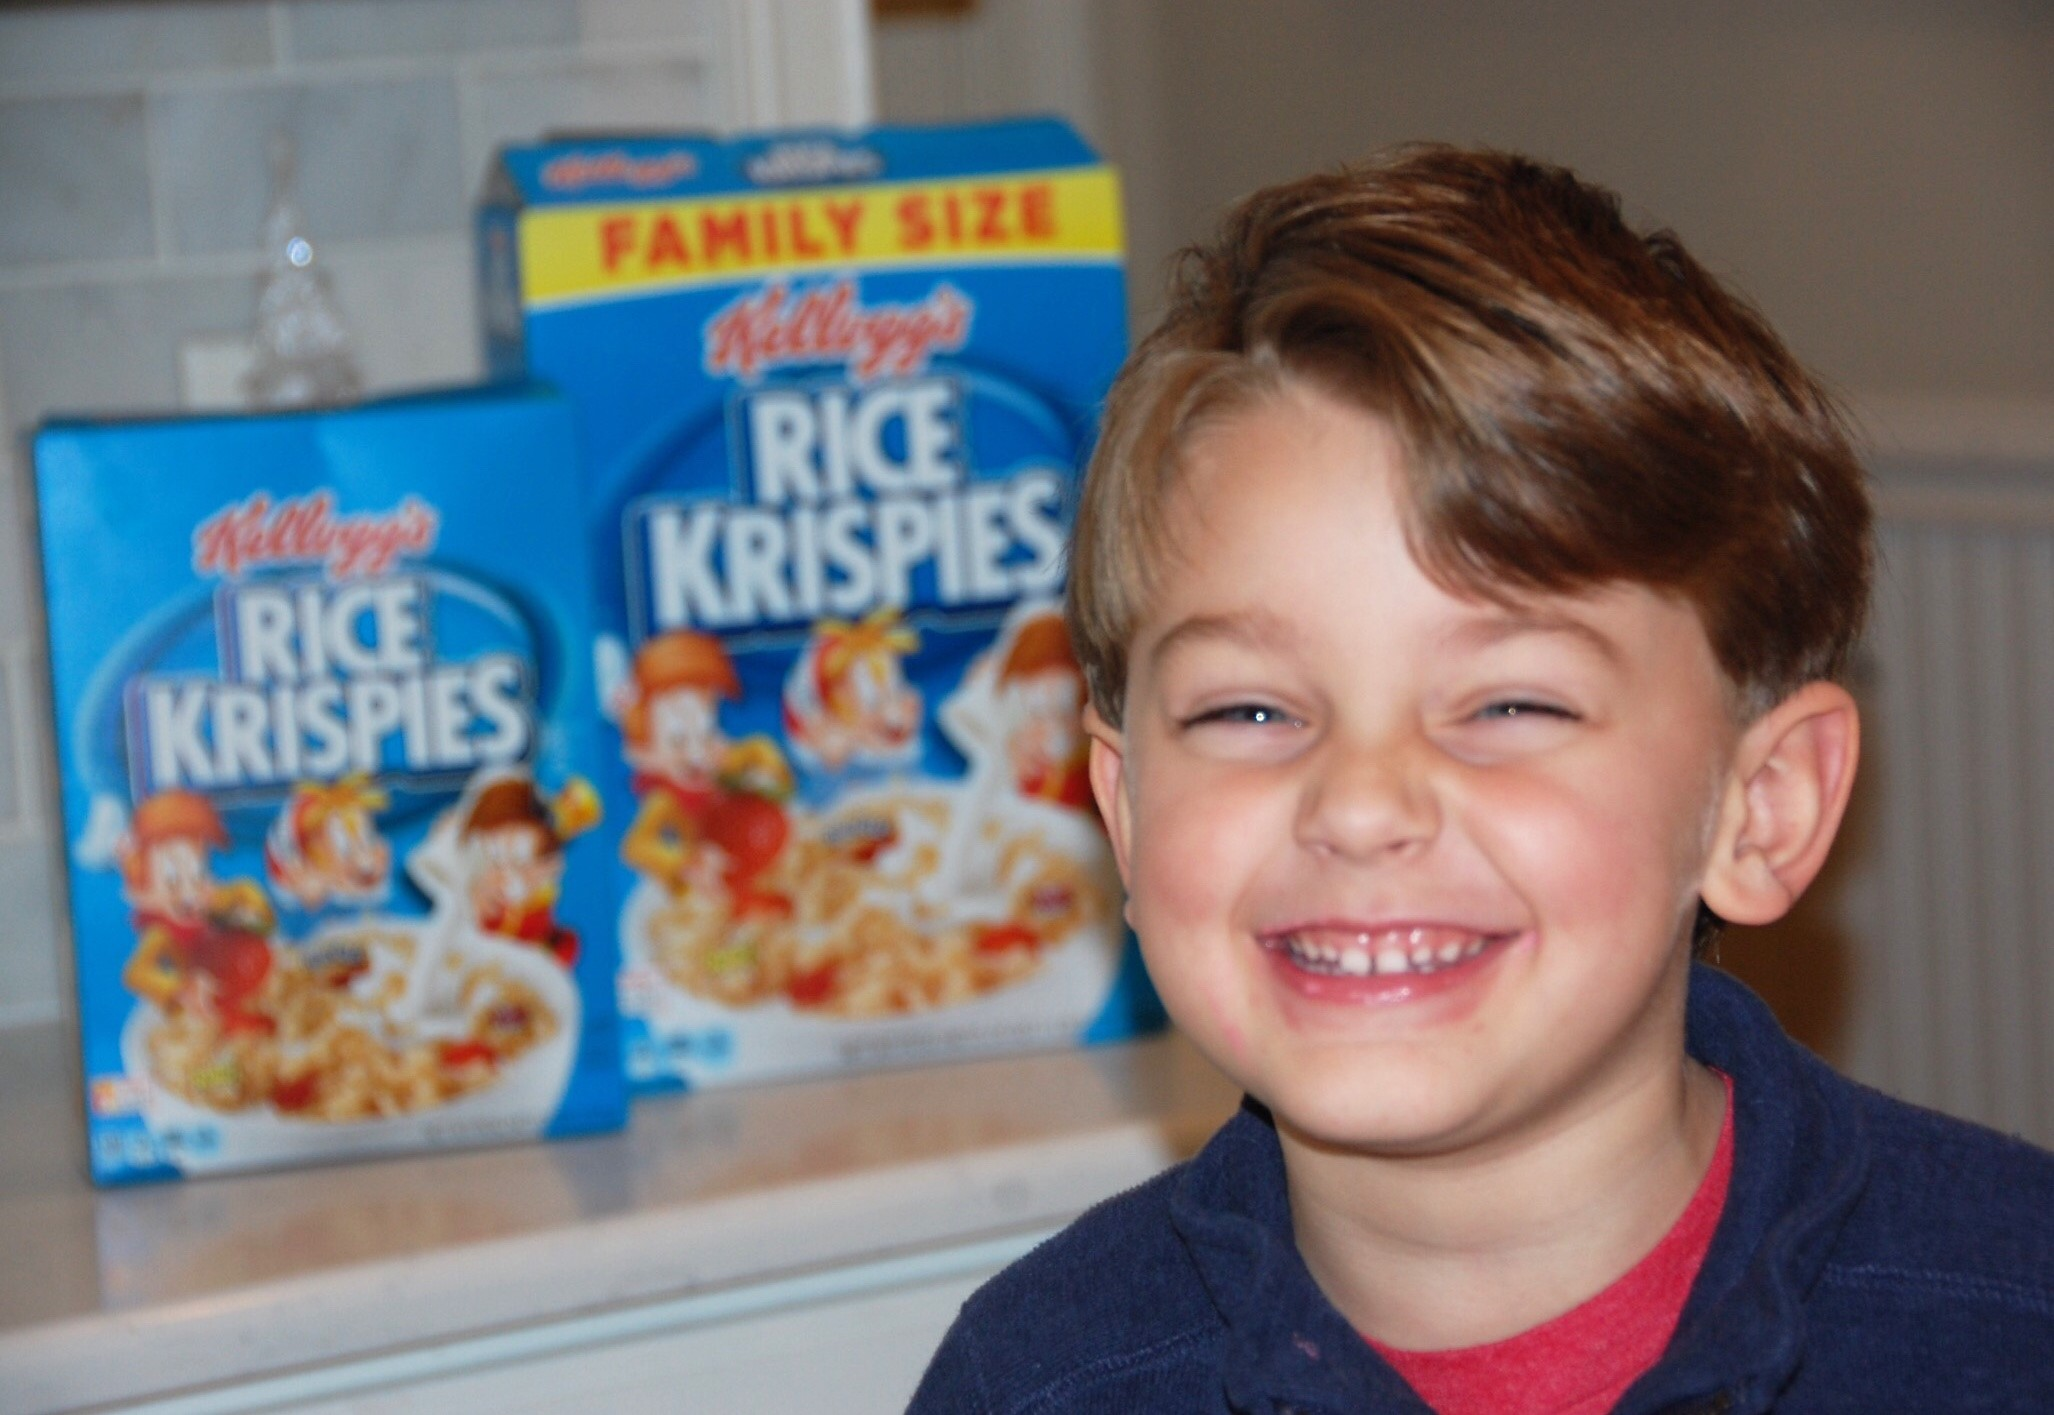 Knox Bishop Rice Krispies Treats